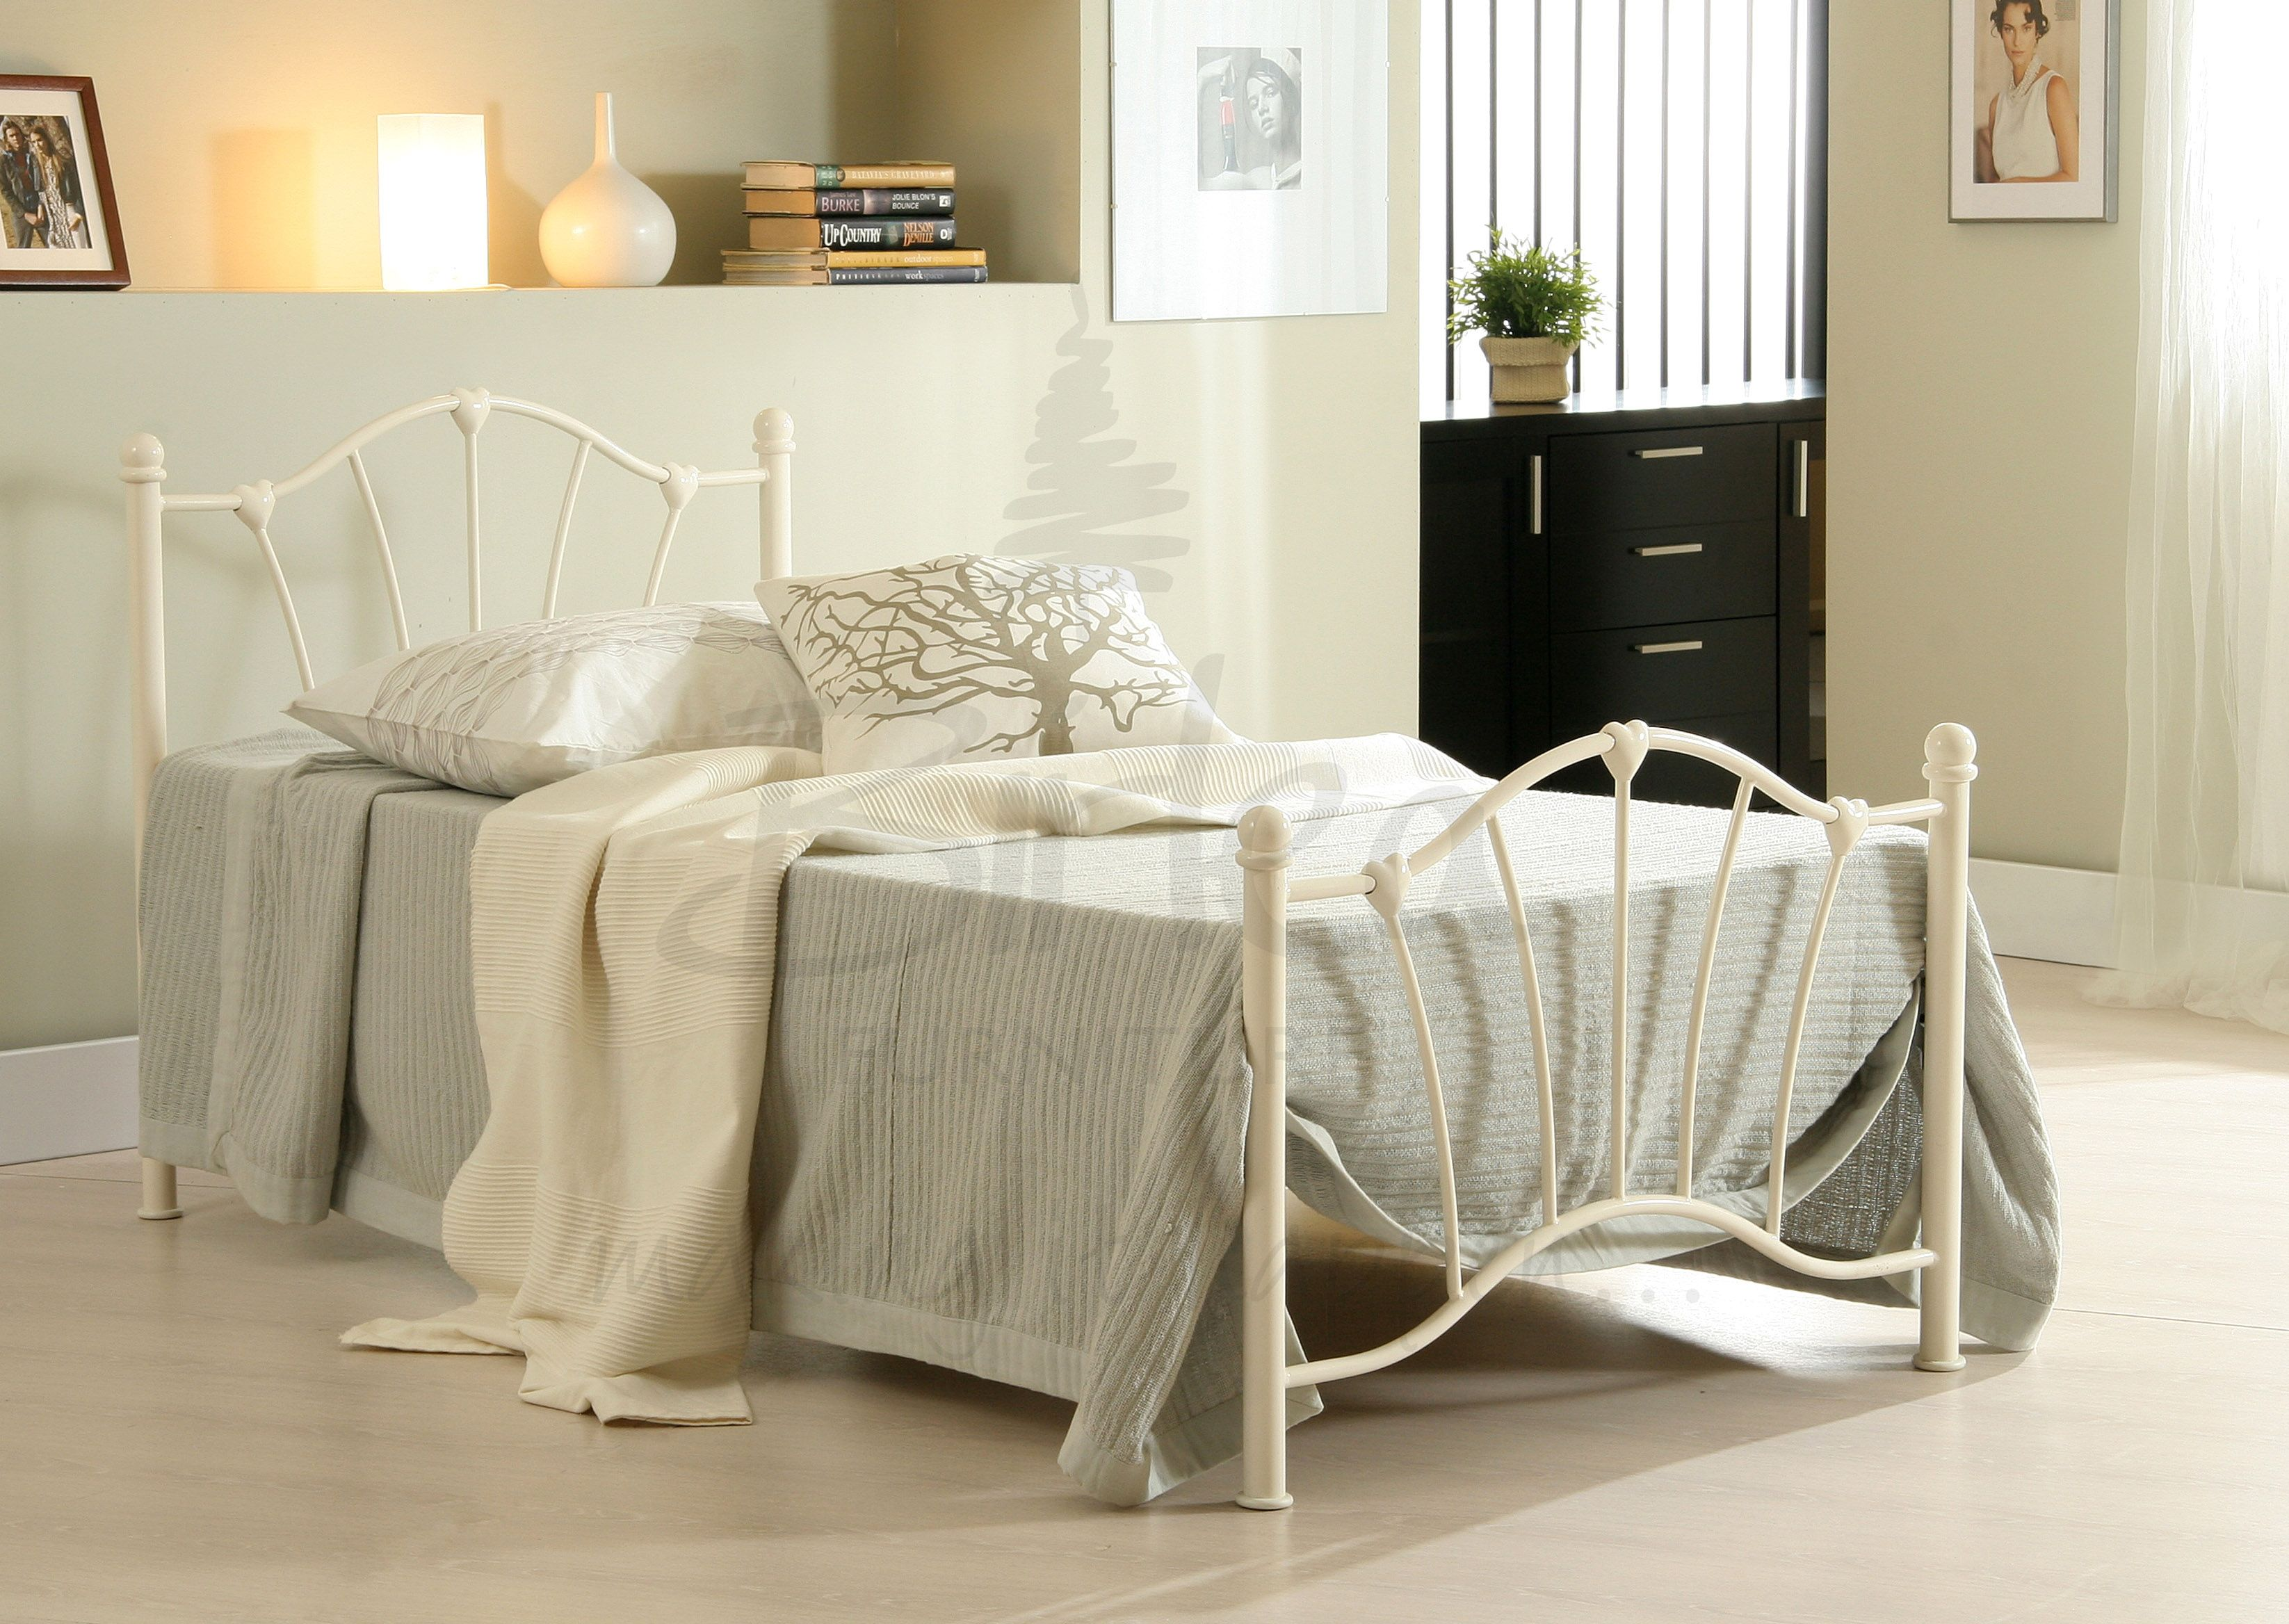 BIRLEA Sophia Cream 3ft Single Metal Bed Frame £79